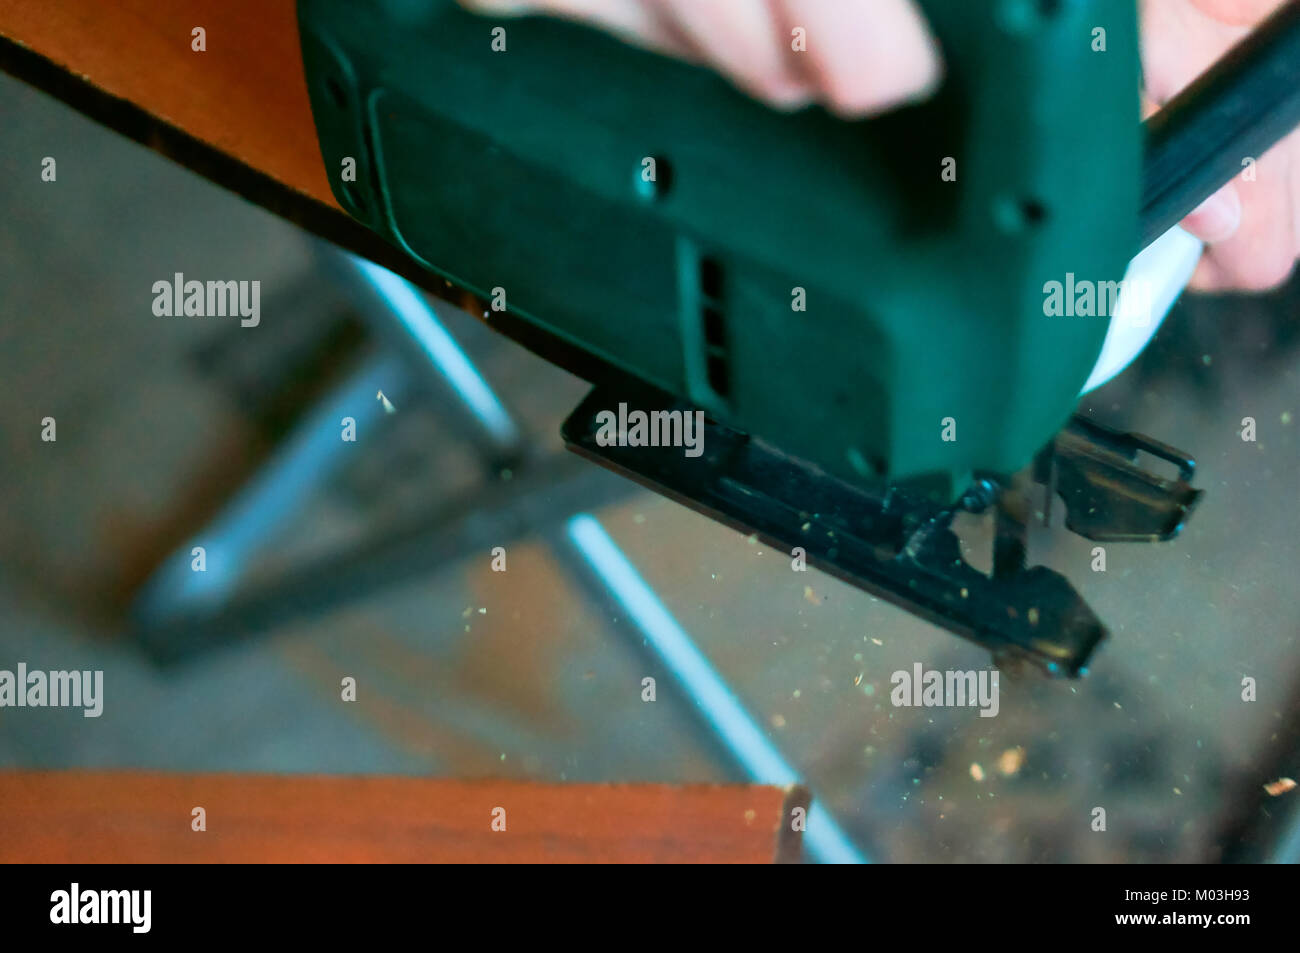 carpenter working with a jig saw and wood cutting jigsaw manual - Stock Image